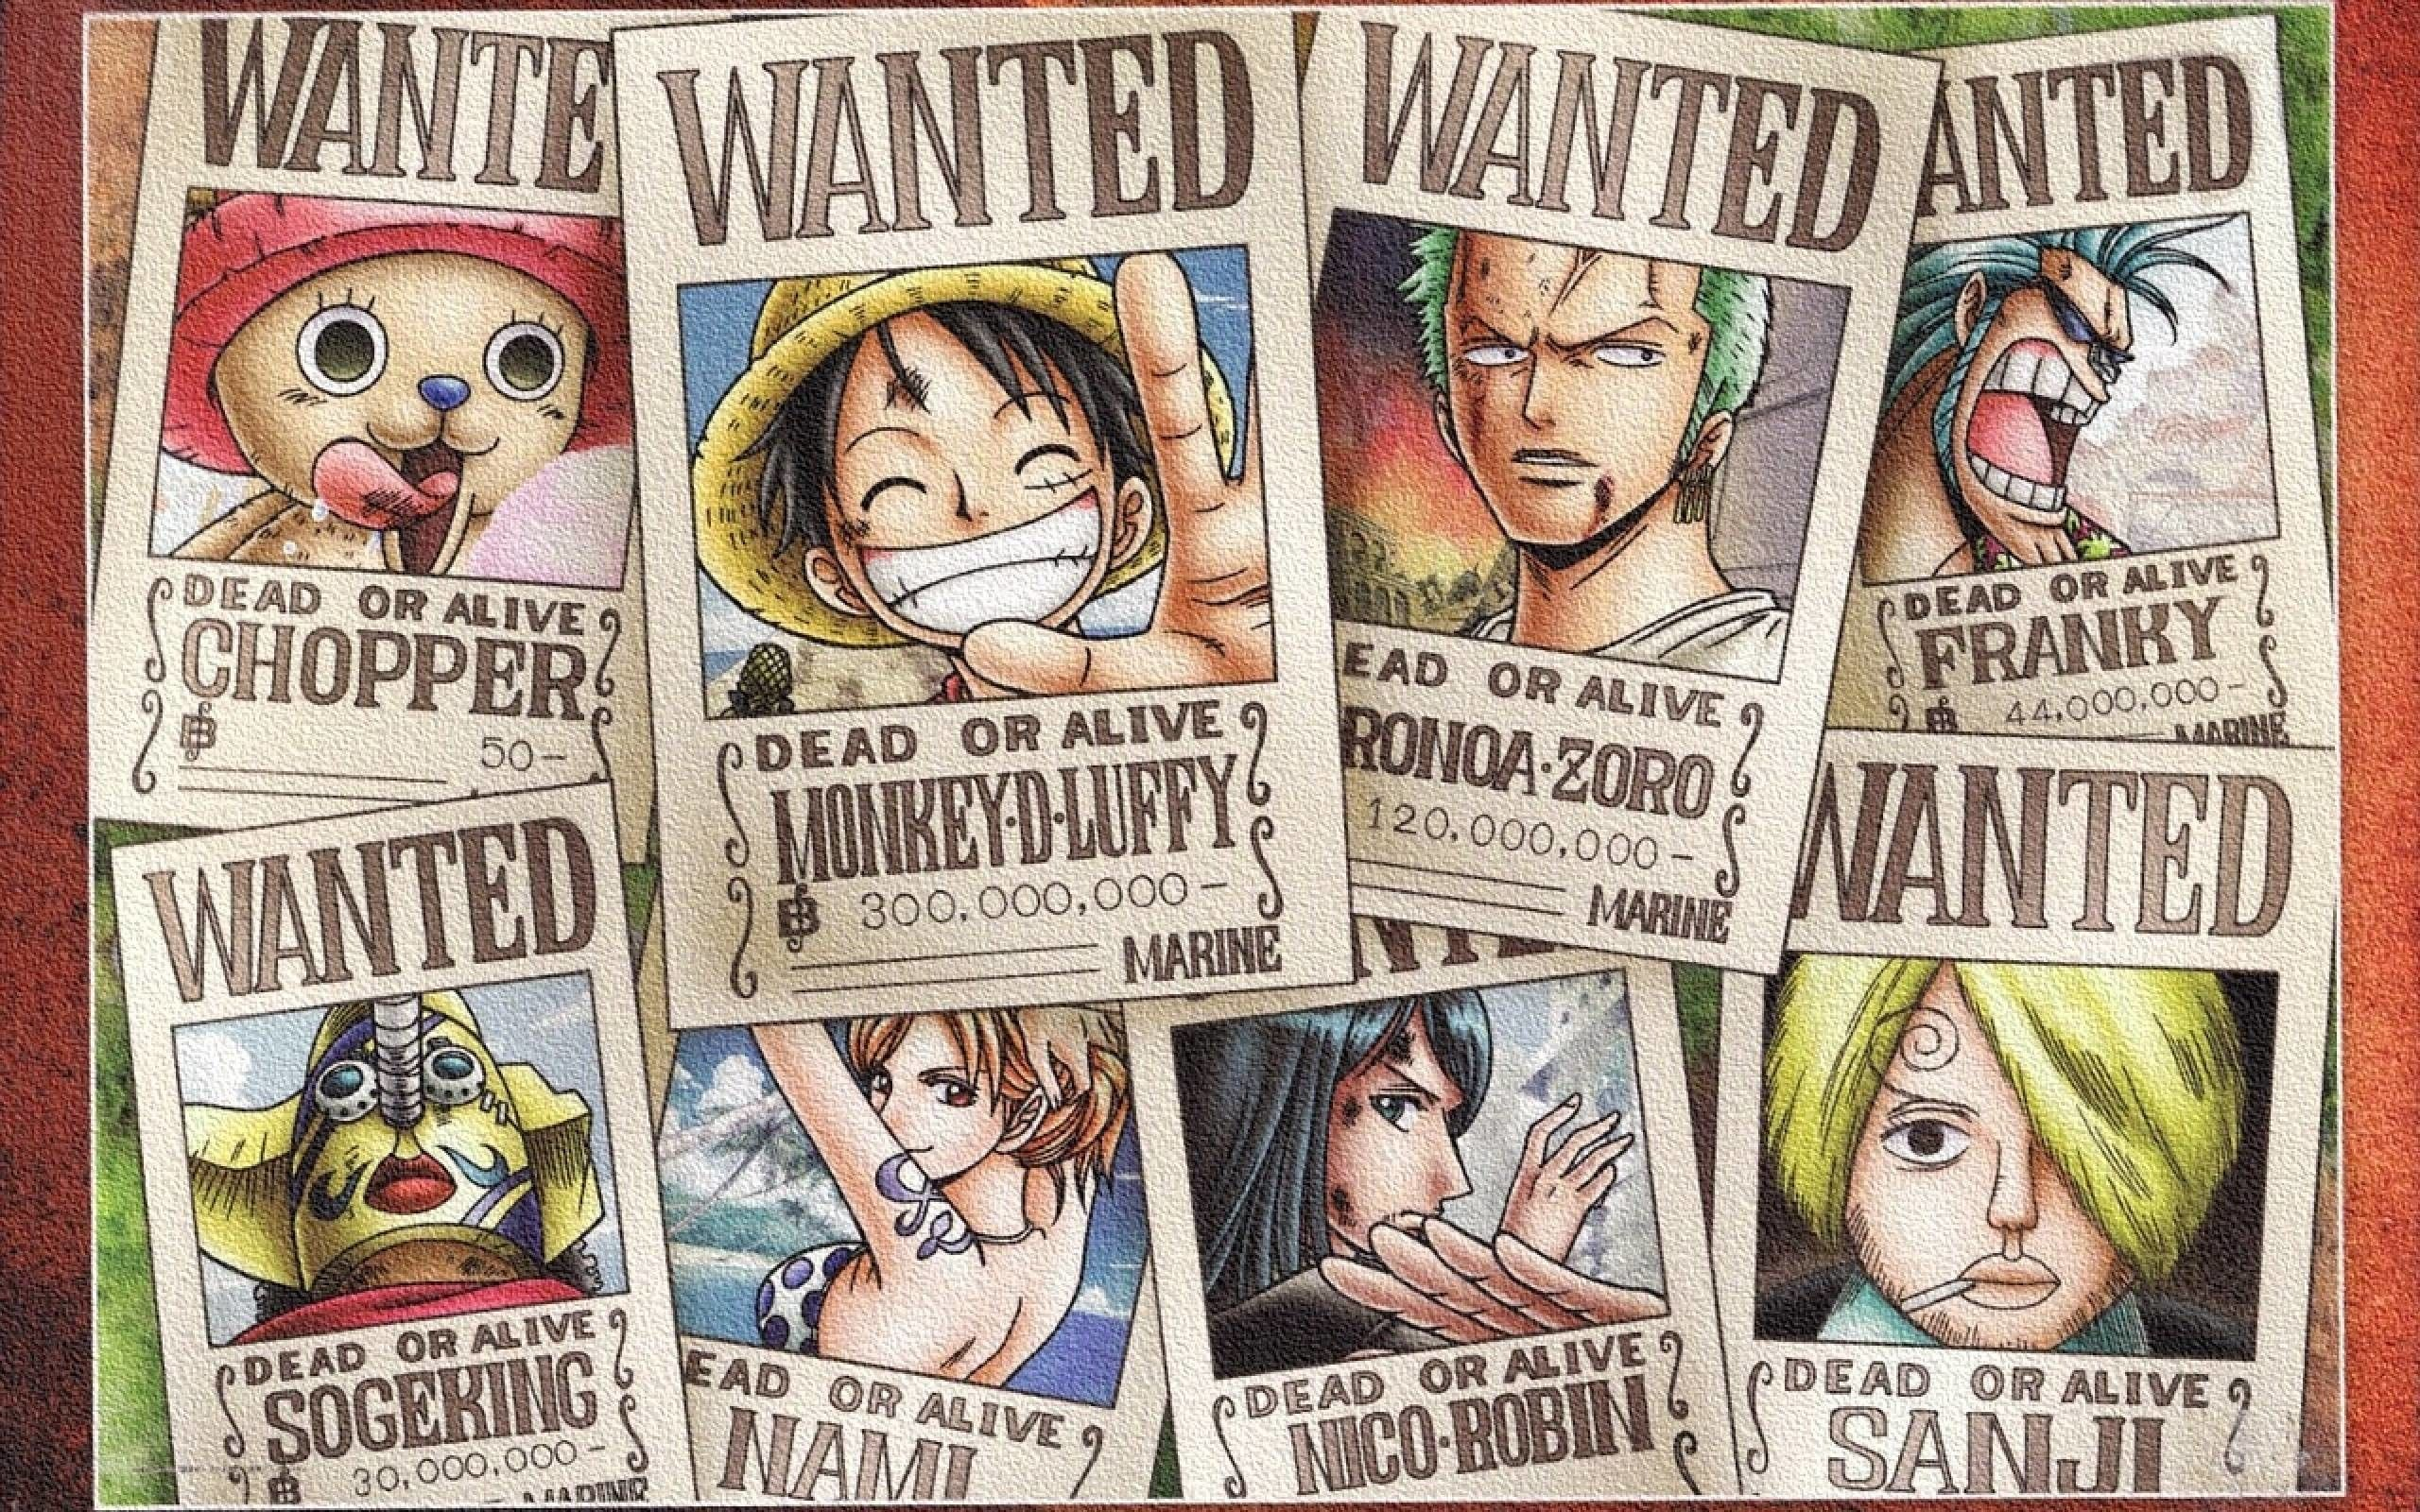 One Piece Wanted Wallpapers Top Free One Piece Wanted Backgrounds Wallpaperaccess